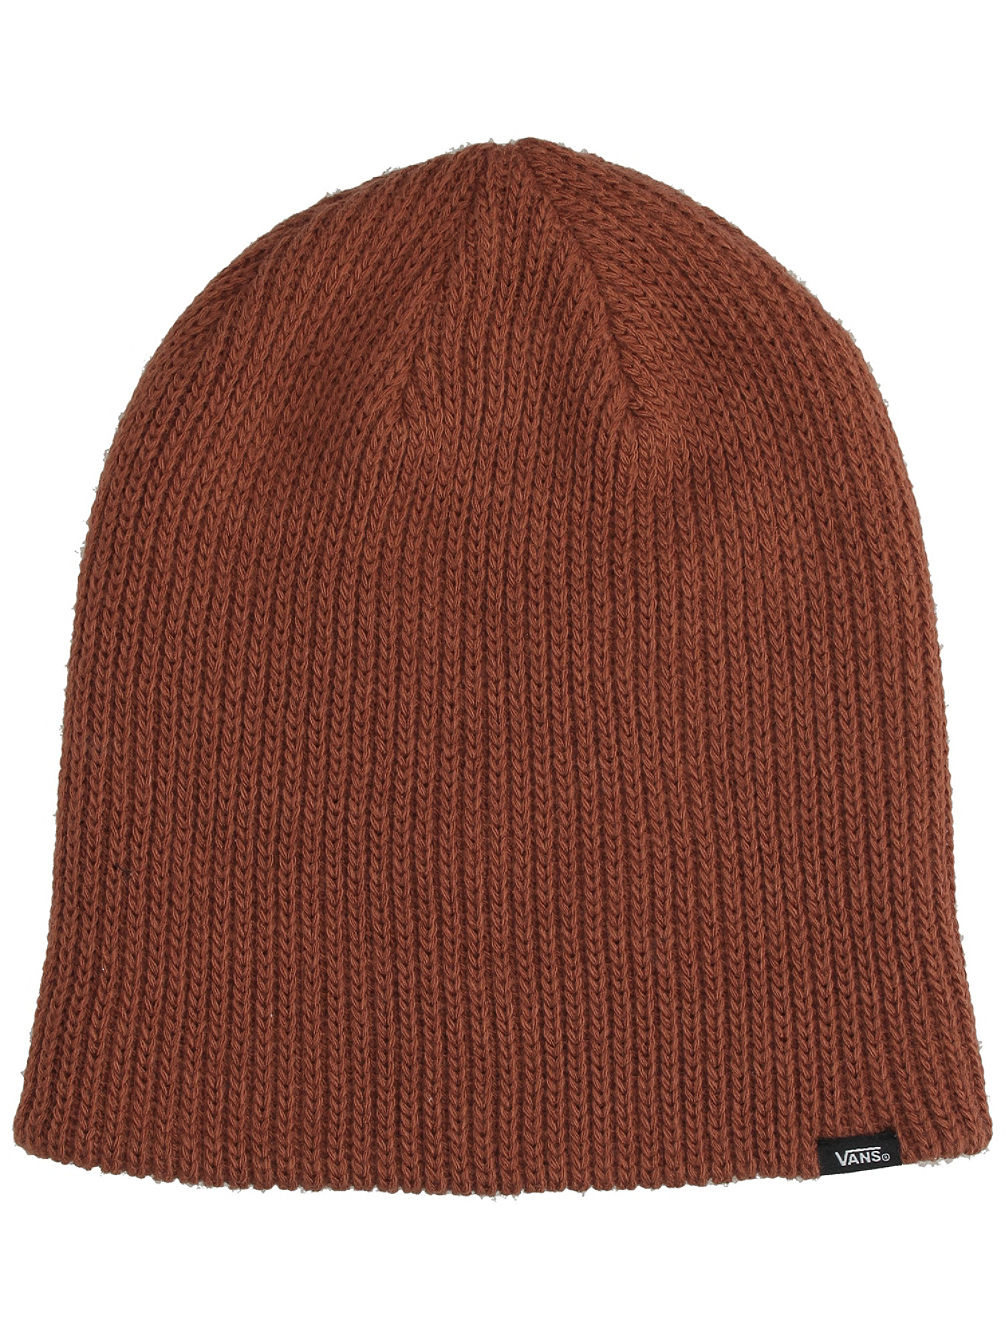 Buy Vans Core Basics Beanie online at blue-tomato.com 0356aa9aace